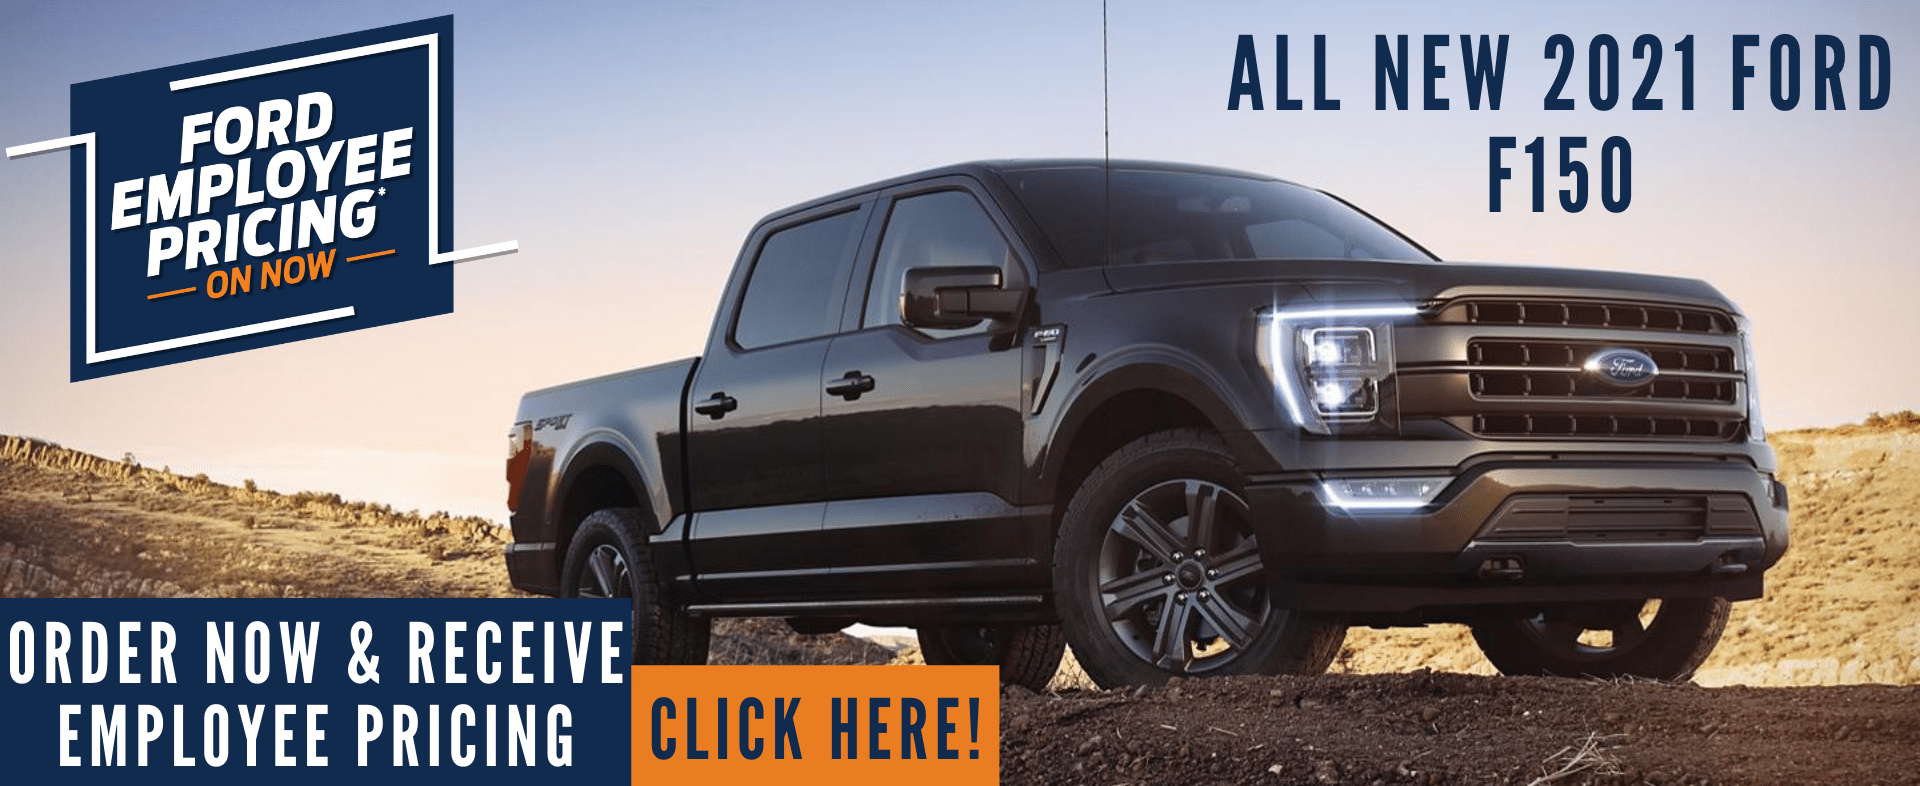 order your 2021 f150